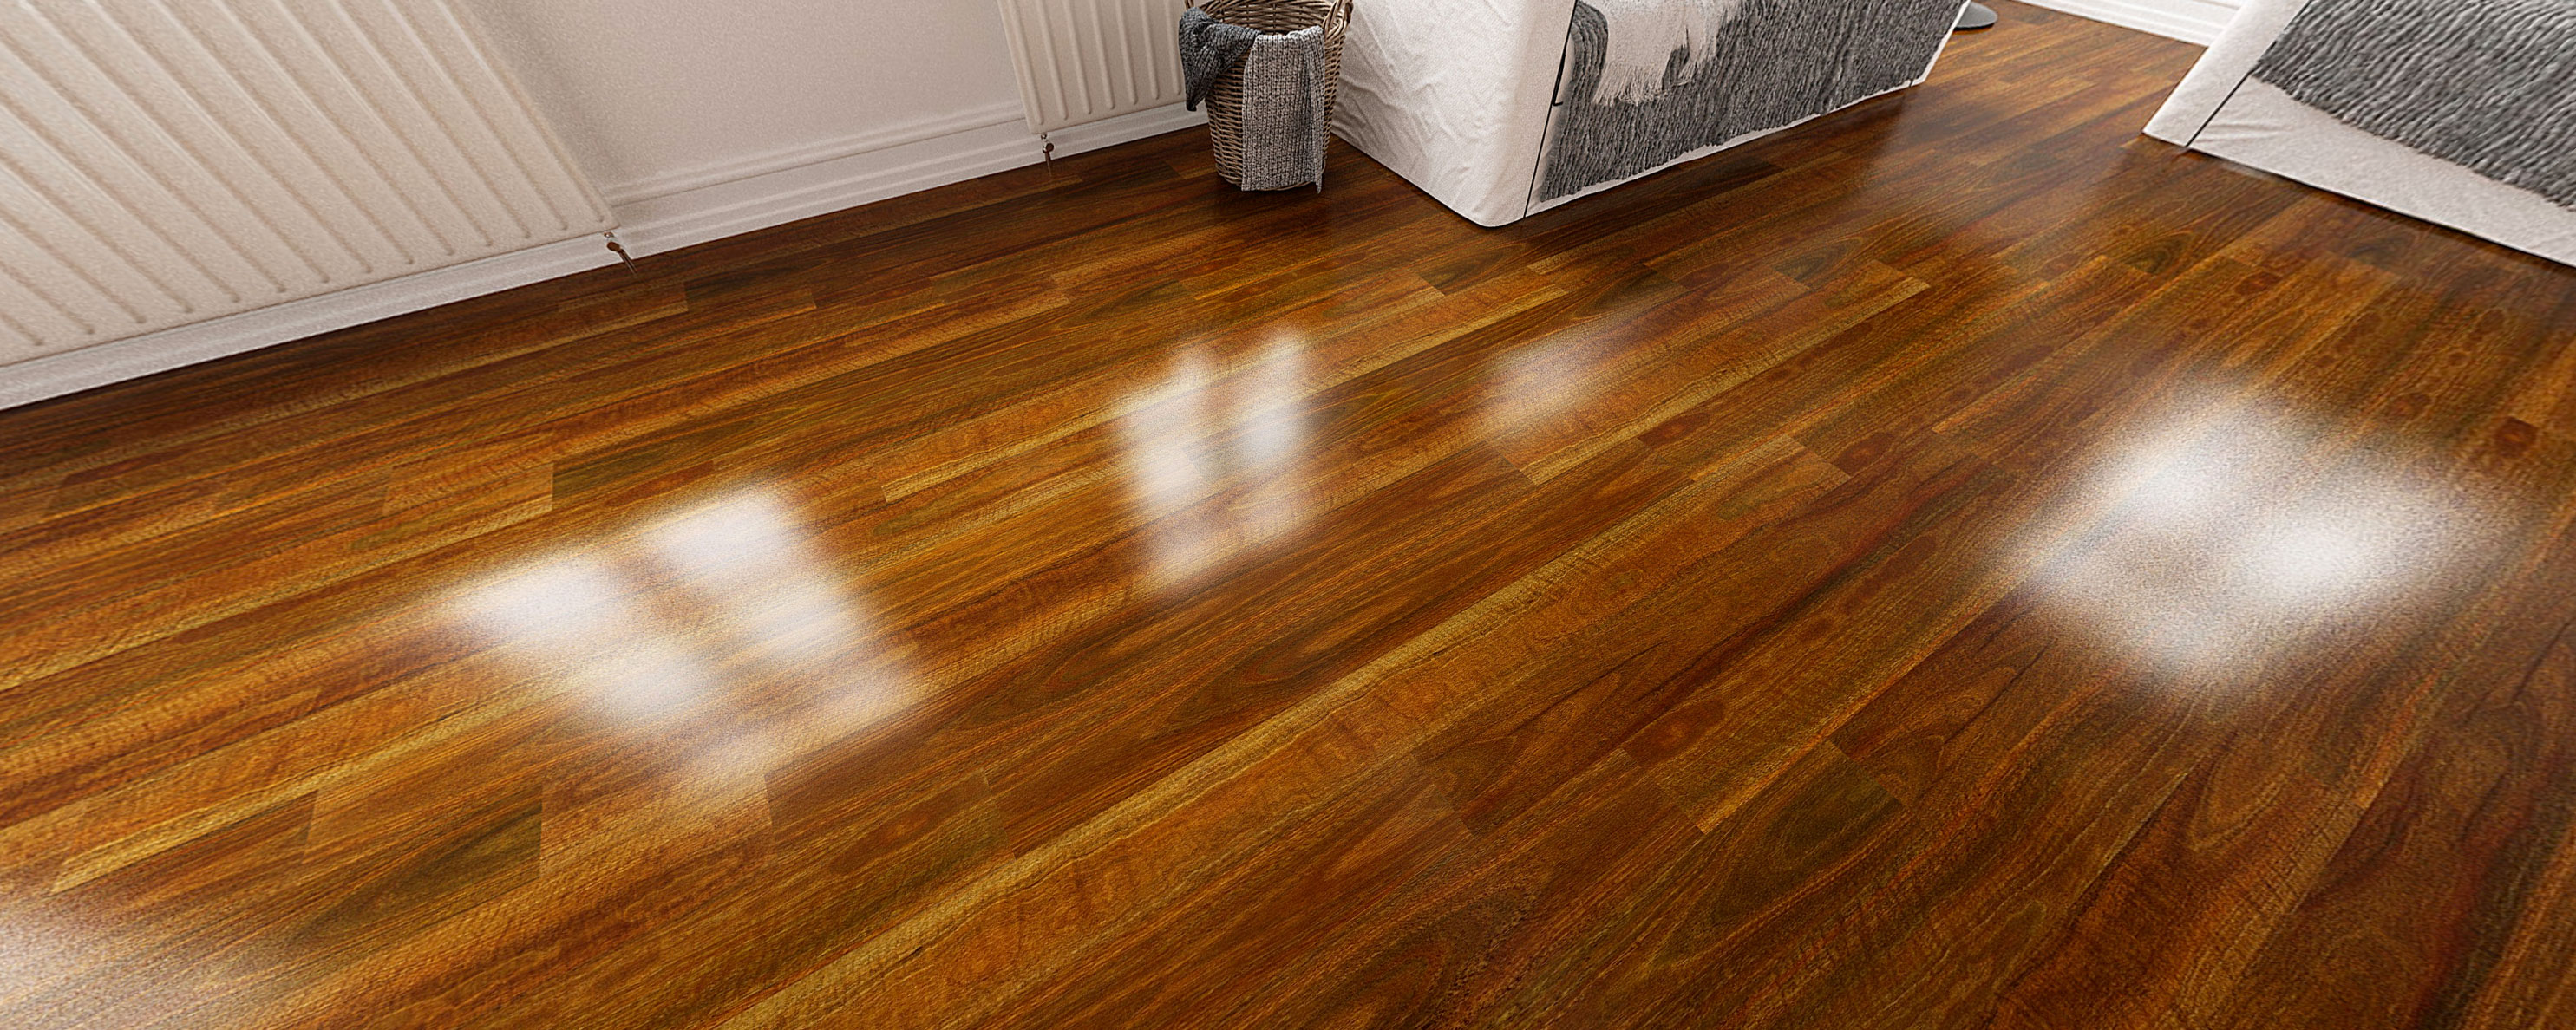 12mm NSW Spotted Gum